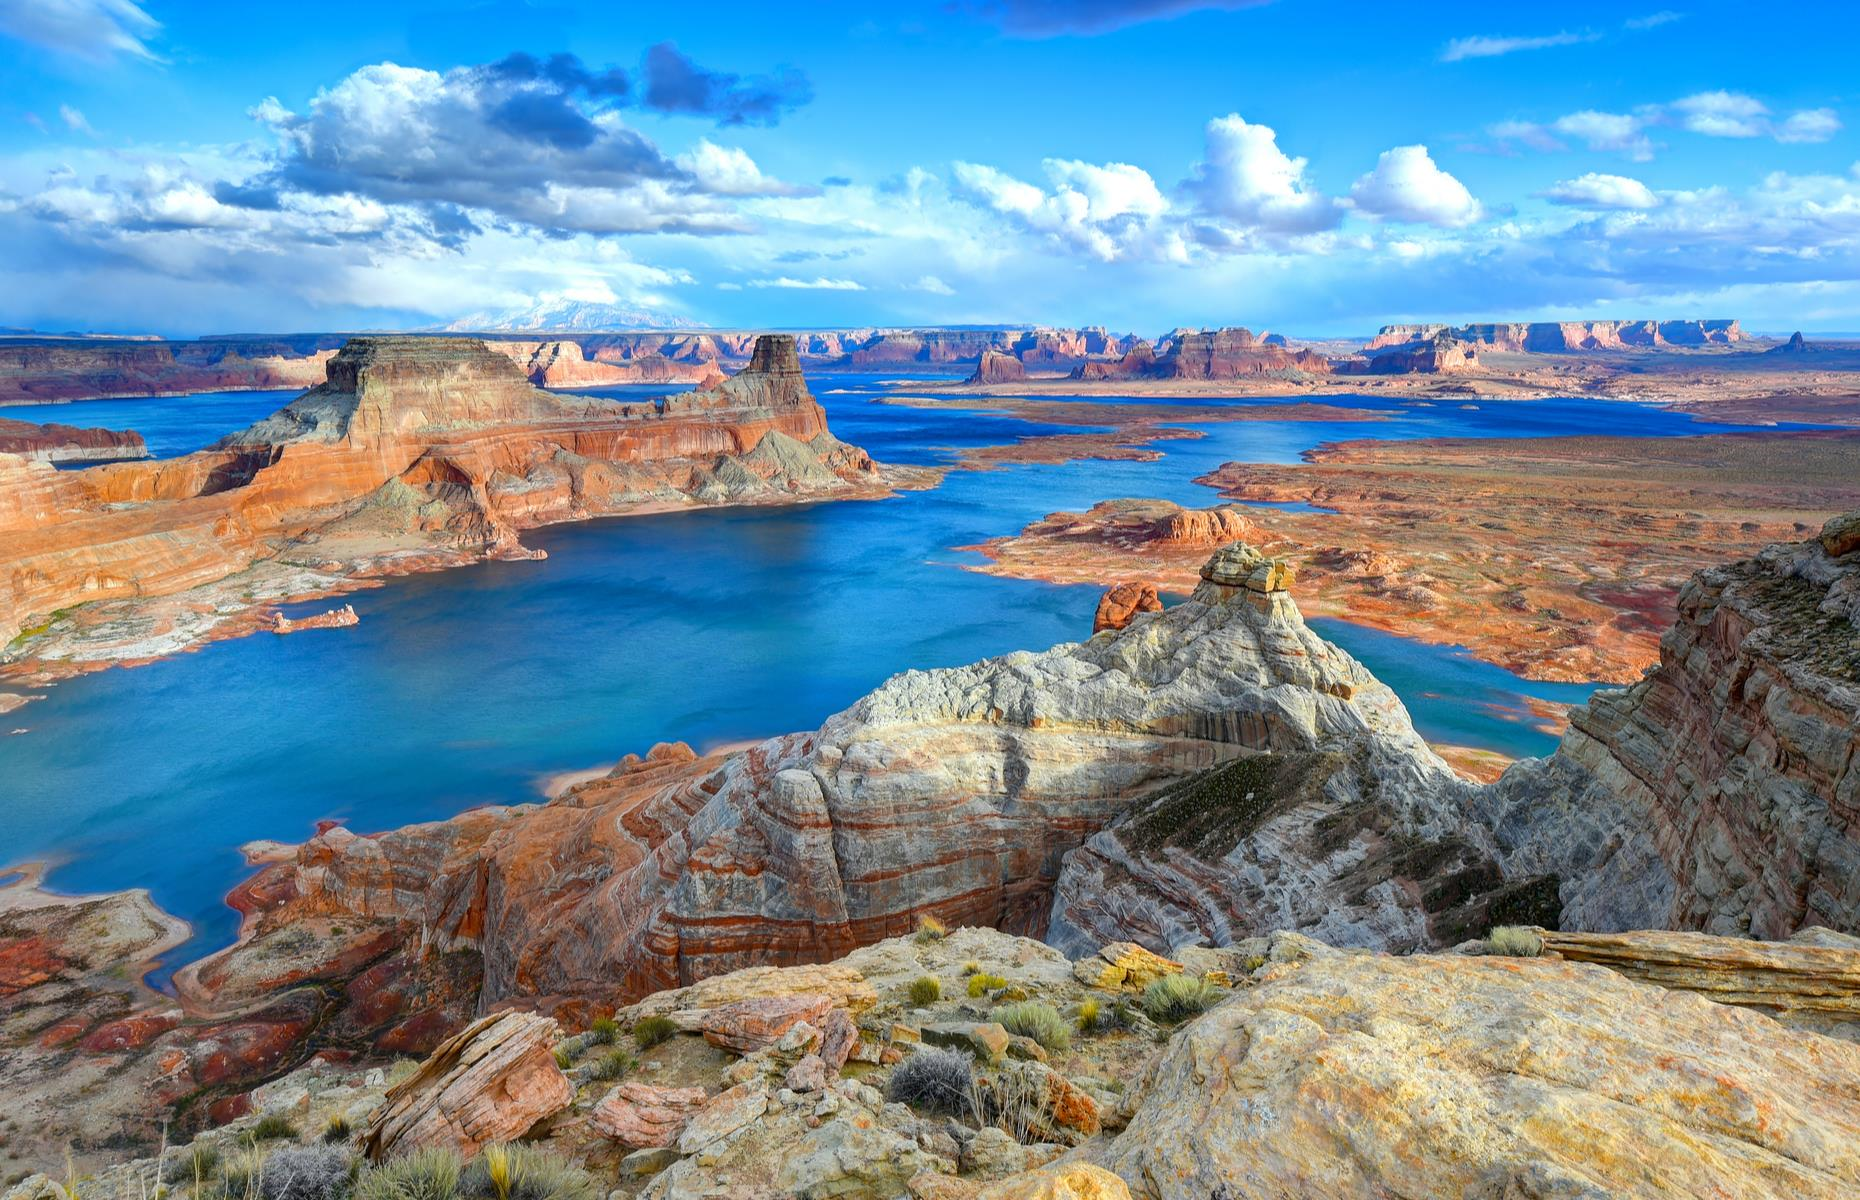 "Slide 2 of 31: When it comes to beautiful ""fake lakes"", Lake Powell, which straddles the states of Utah and Arizona, takes some beating. With its vast blue waters, natural bridges, dams and canyons carved into red and apricot rock, it's an extraordinary place. The lake was created in 1963 when the Glen Canyon Dam was built across the Colorado River. It's America's second-largest man-made lake and the most famous feature is Rainbow Bridge, the world's largest natural stone bridge."